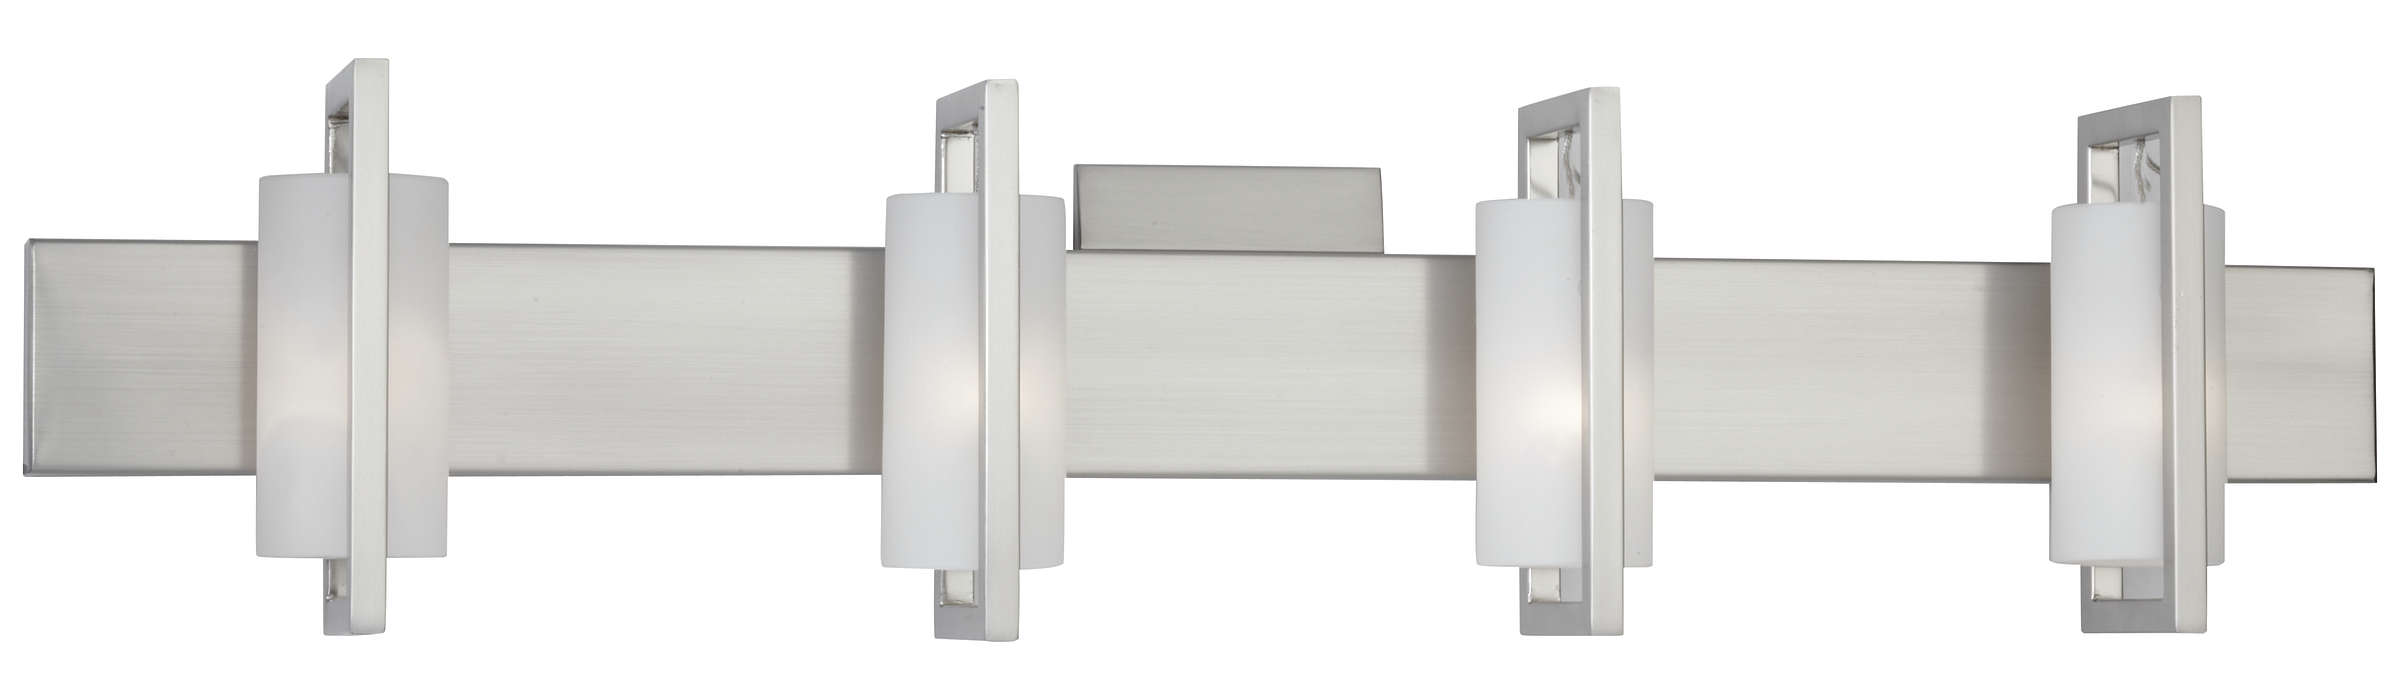 Front Row 4-light Bath in Satin Nickel finish